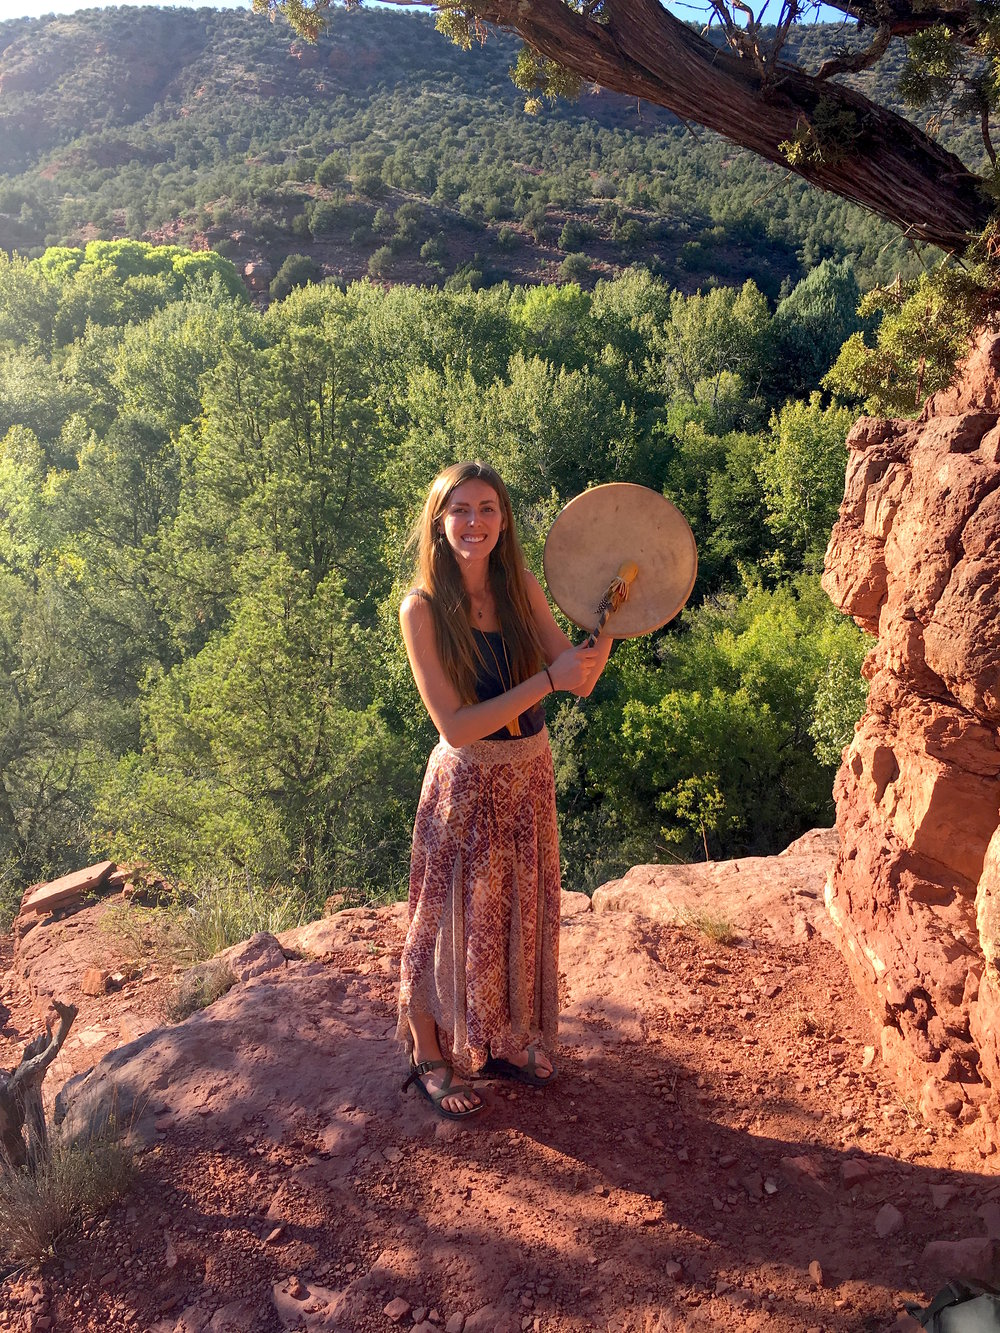 Alex with her drum, Sasewe, in Sedona, AZ.